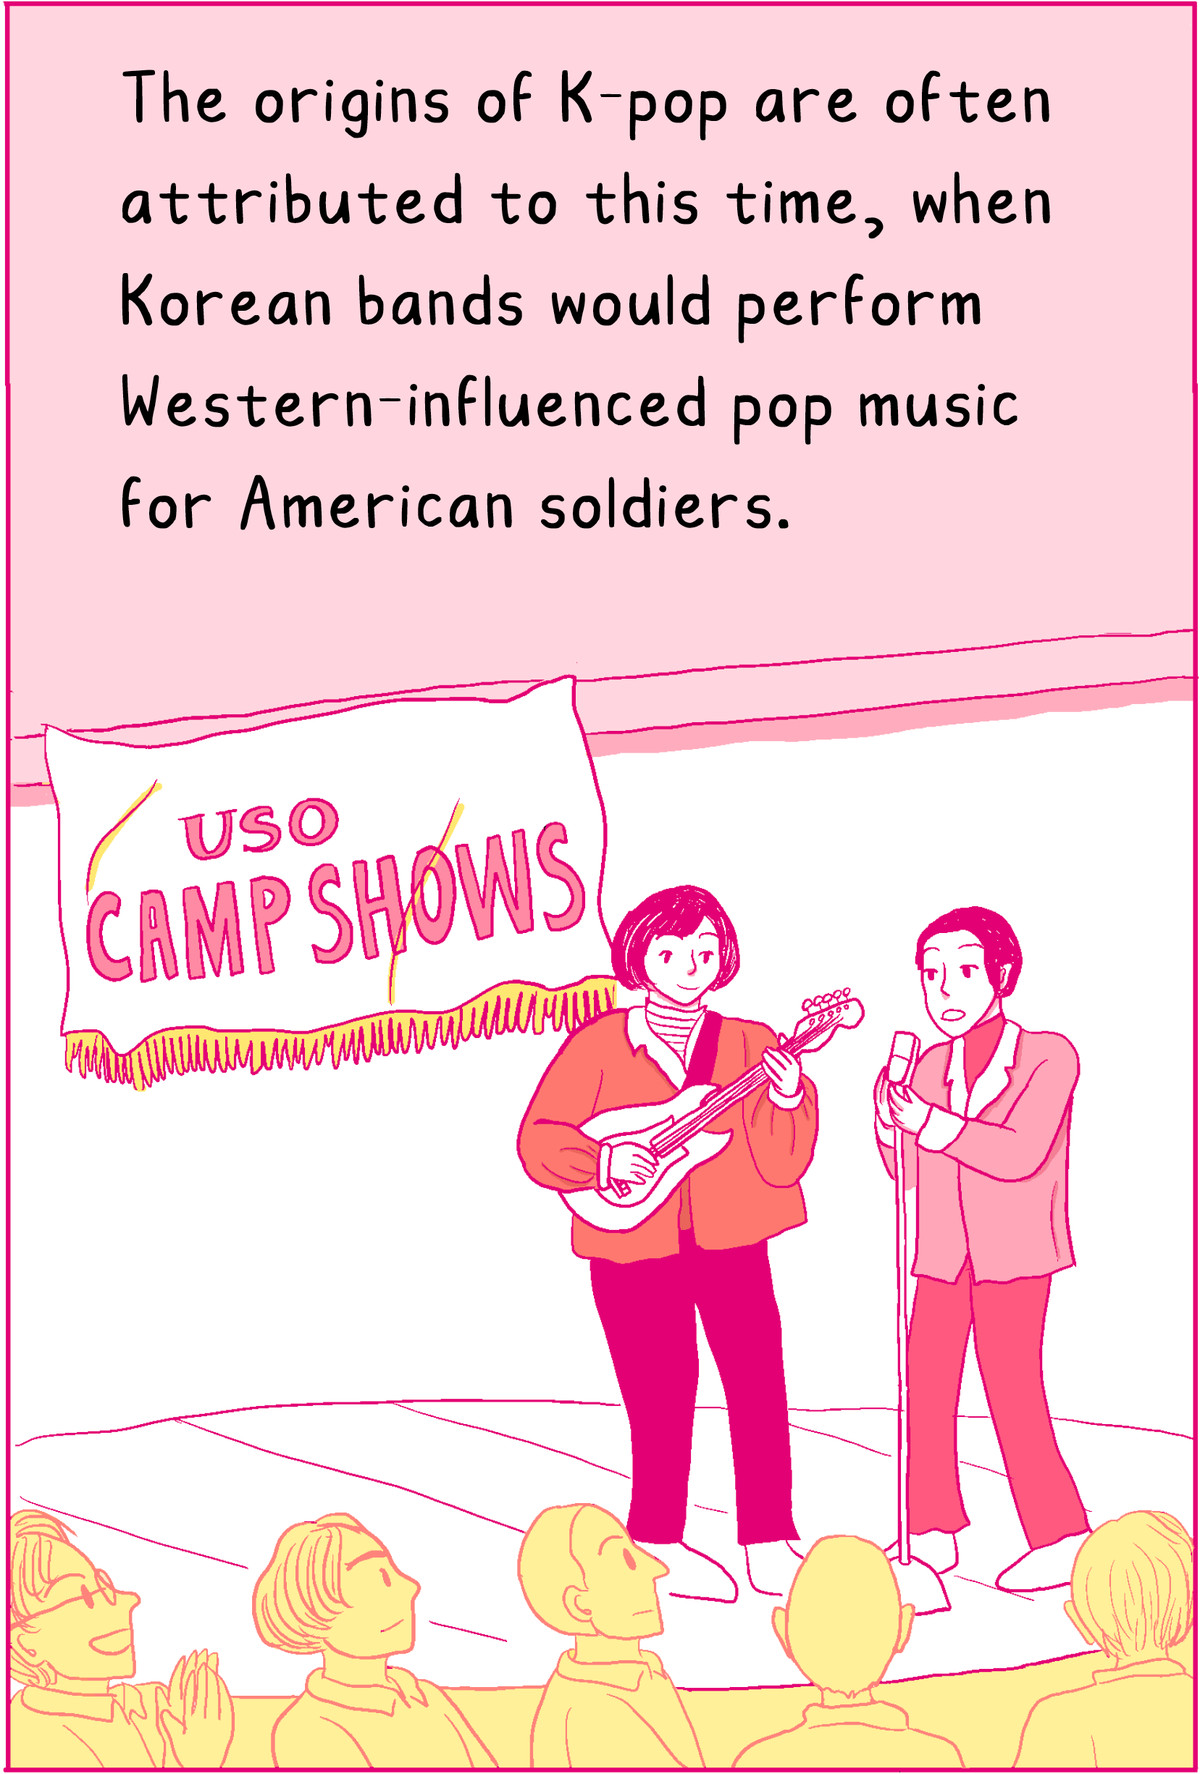 The origins of K-pop are often attributed to this time, when Korean bands would perform Western-influenced pop music for American soldiers.